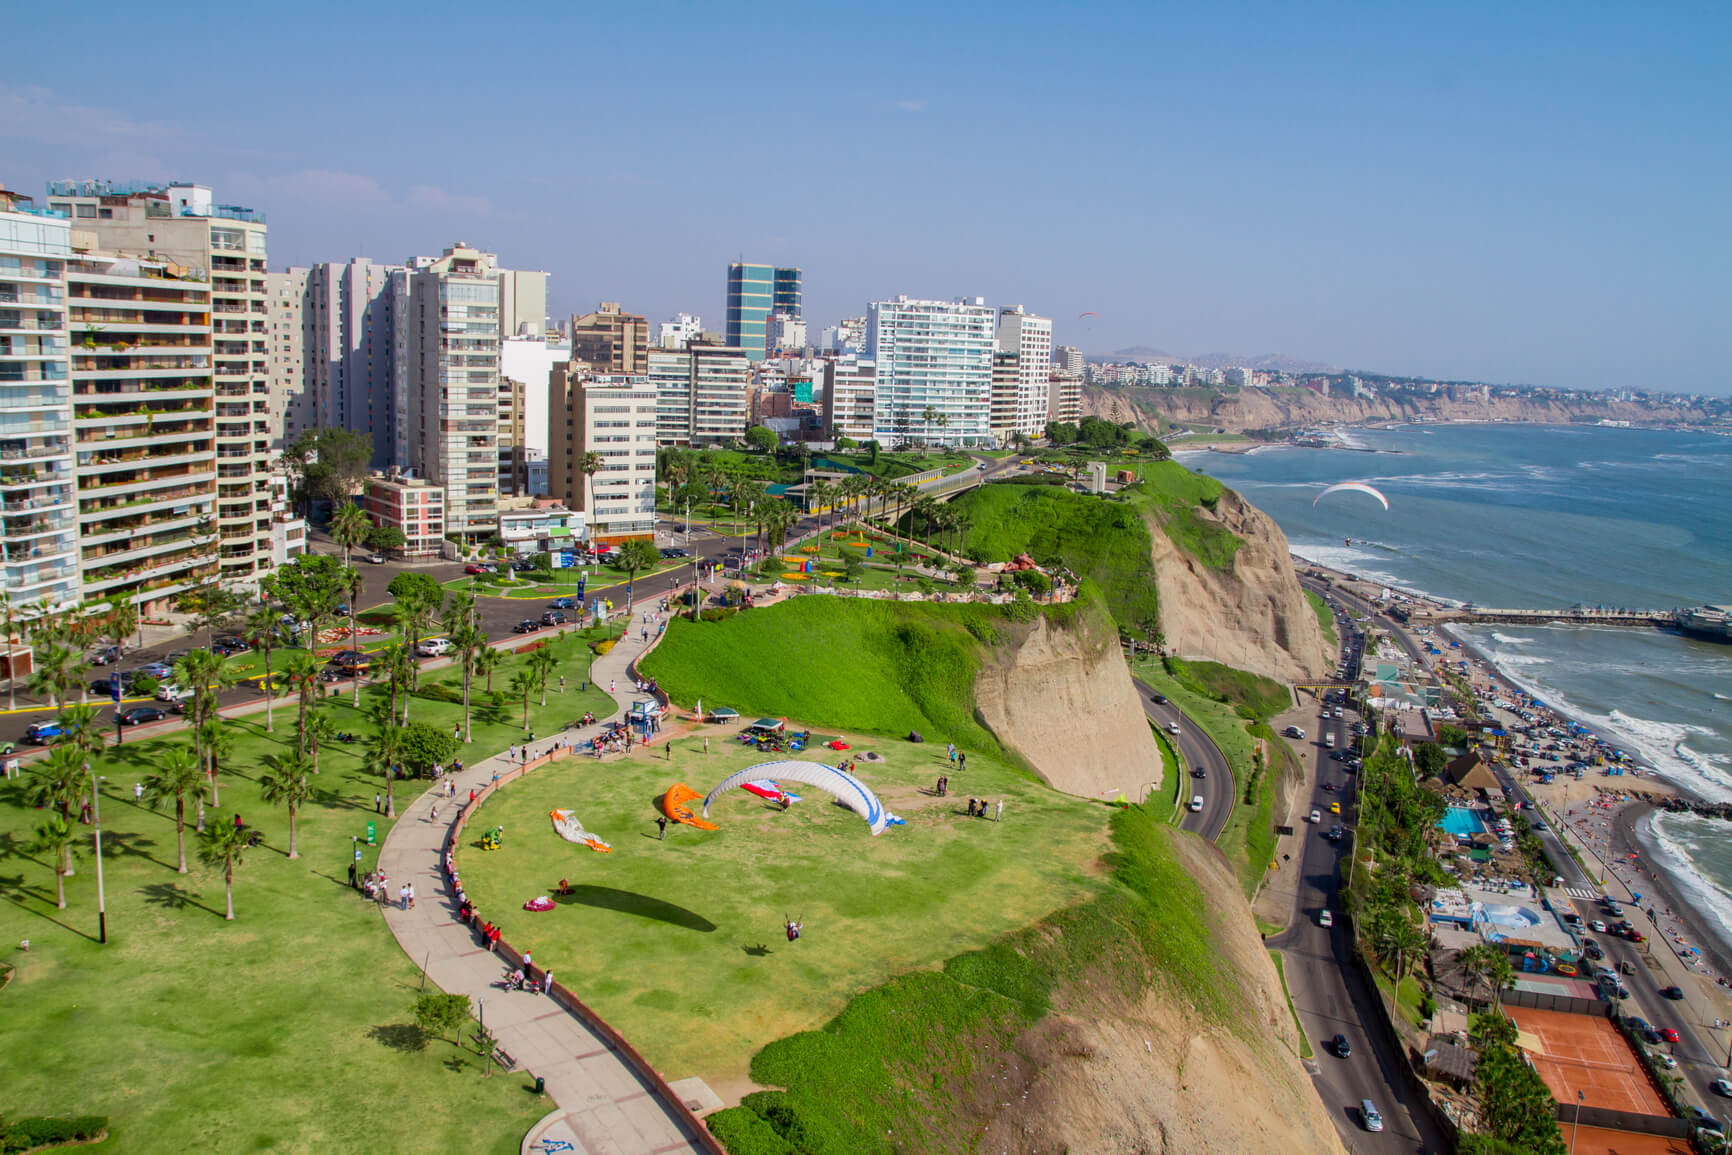 SUMMER: Jacksonville, Florida to Lima, Peru for only $363 roundtrip (Jul-Sep dates)